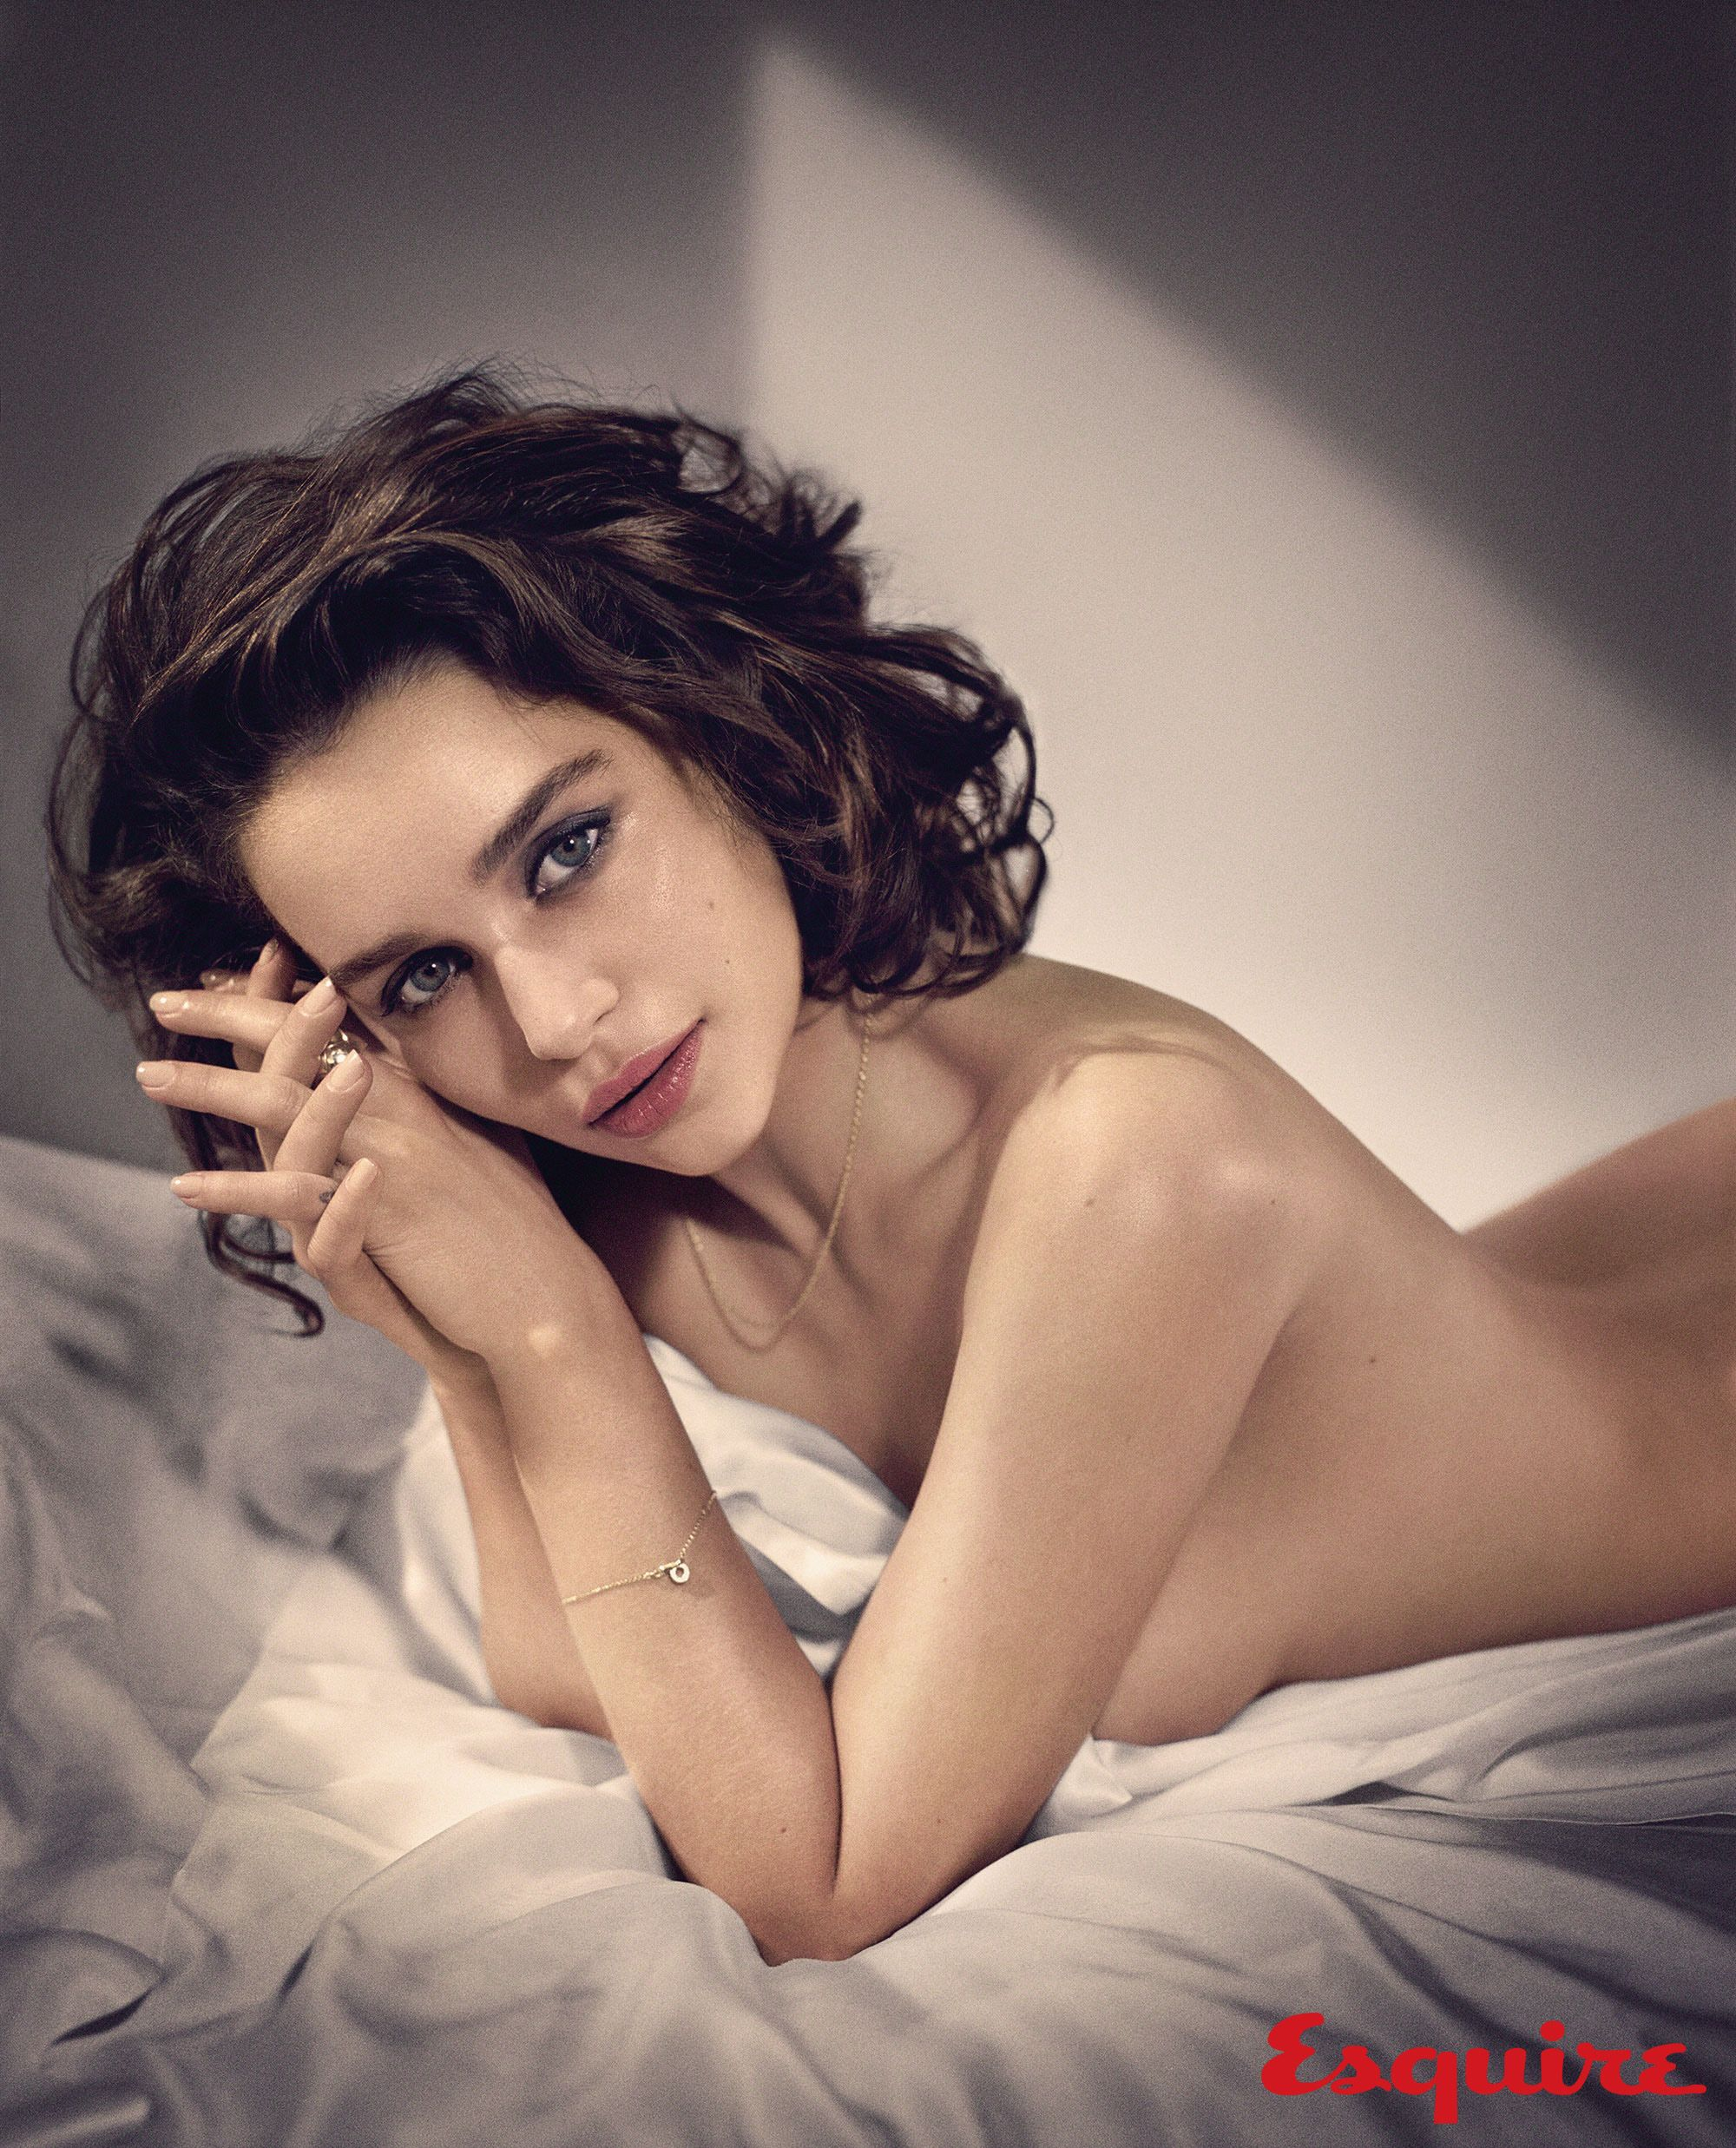 Naked sexiest woman alive